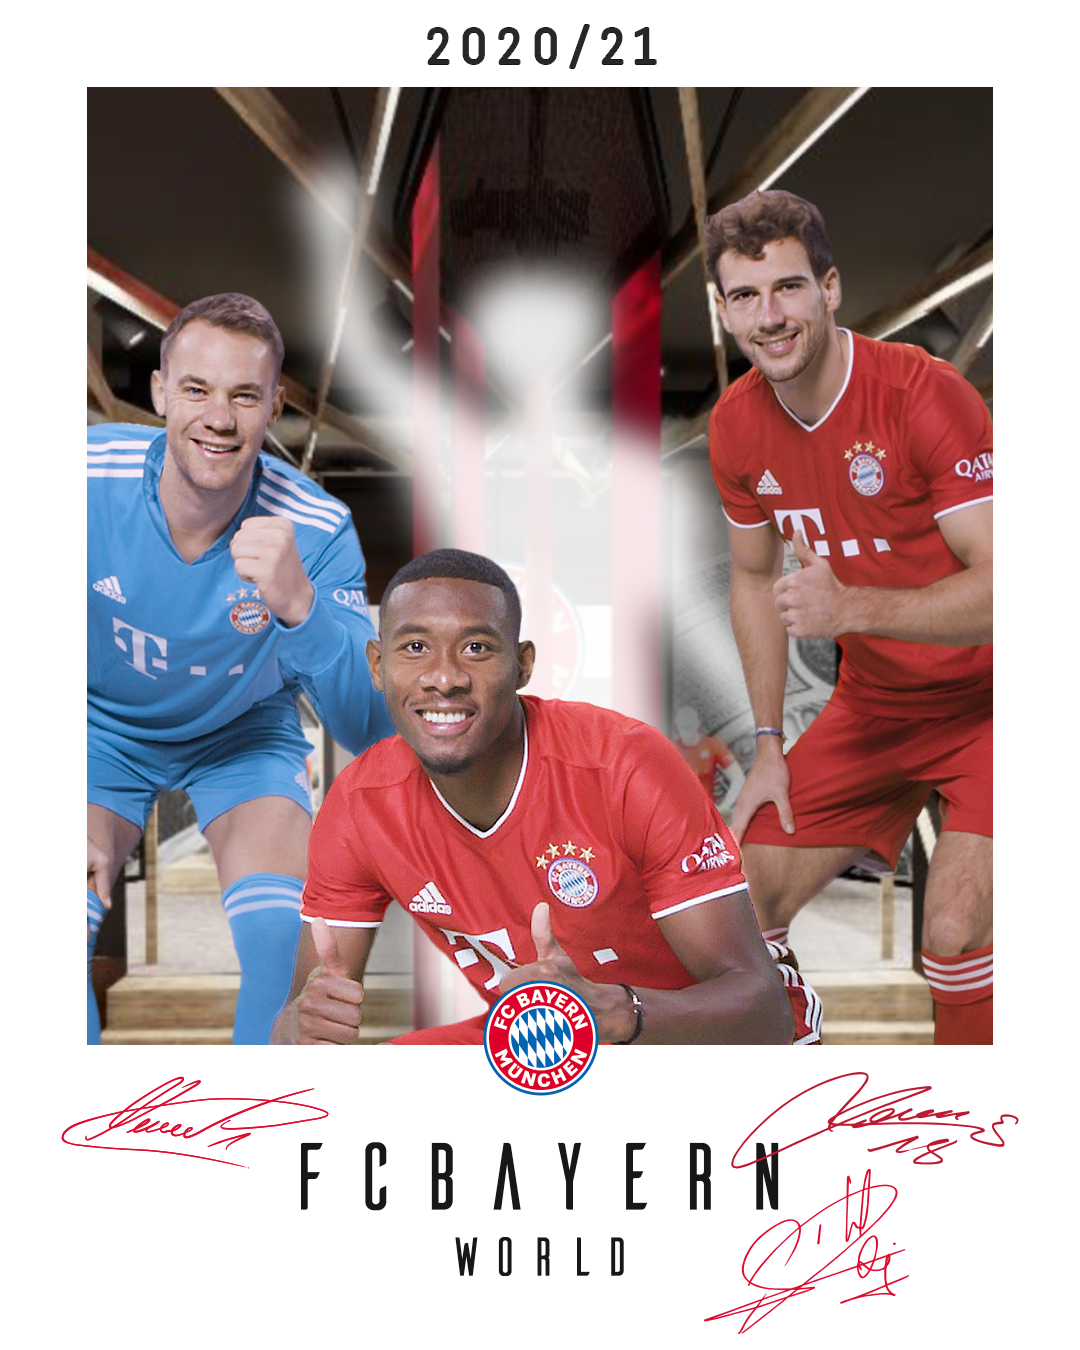 Fan photo with the starts of FC Bayern Munich powered by augmented reality in the FC Bayern Munich World as a polaroid.